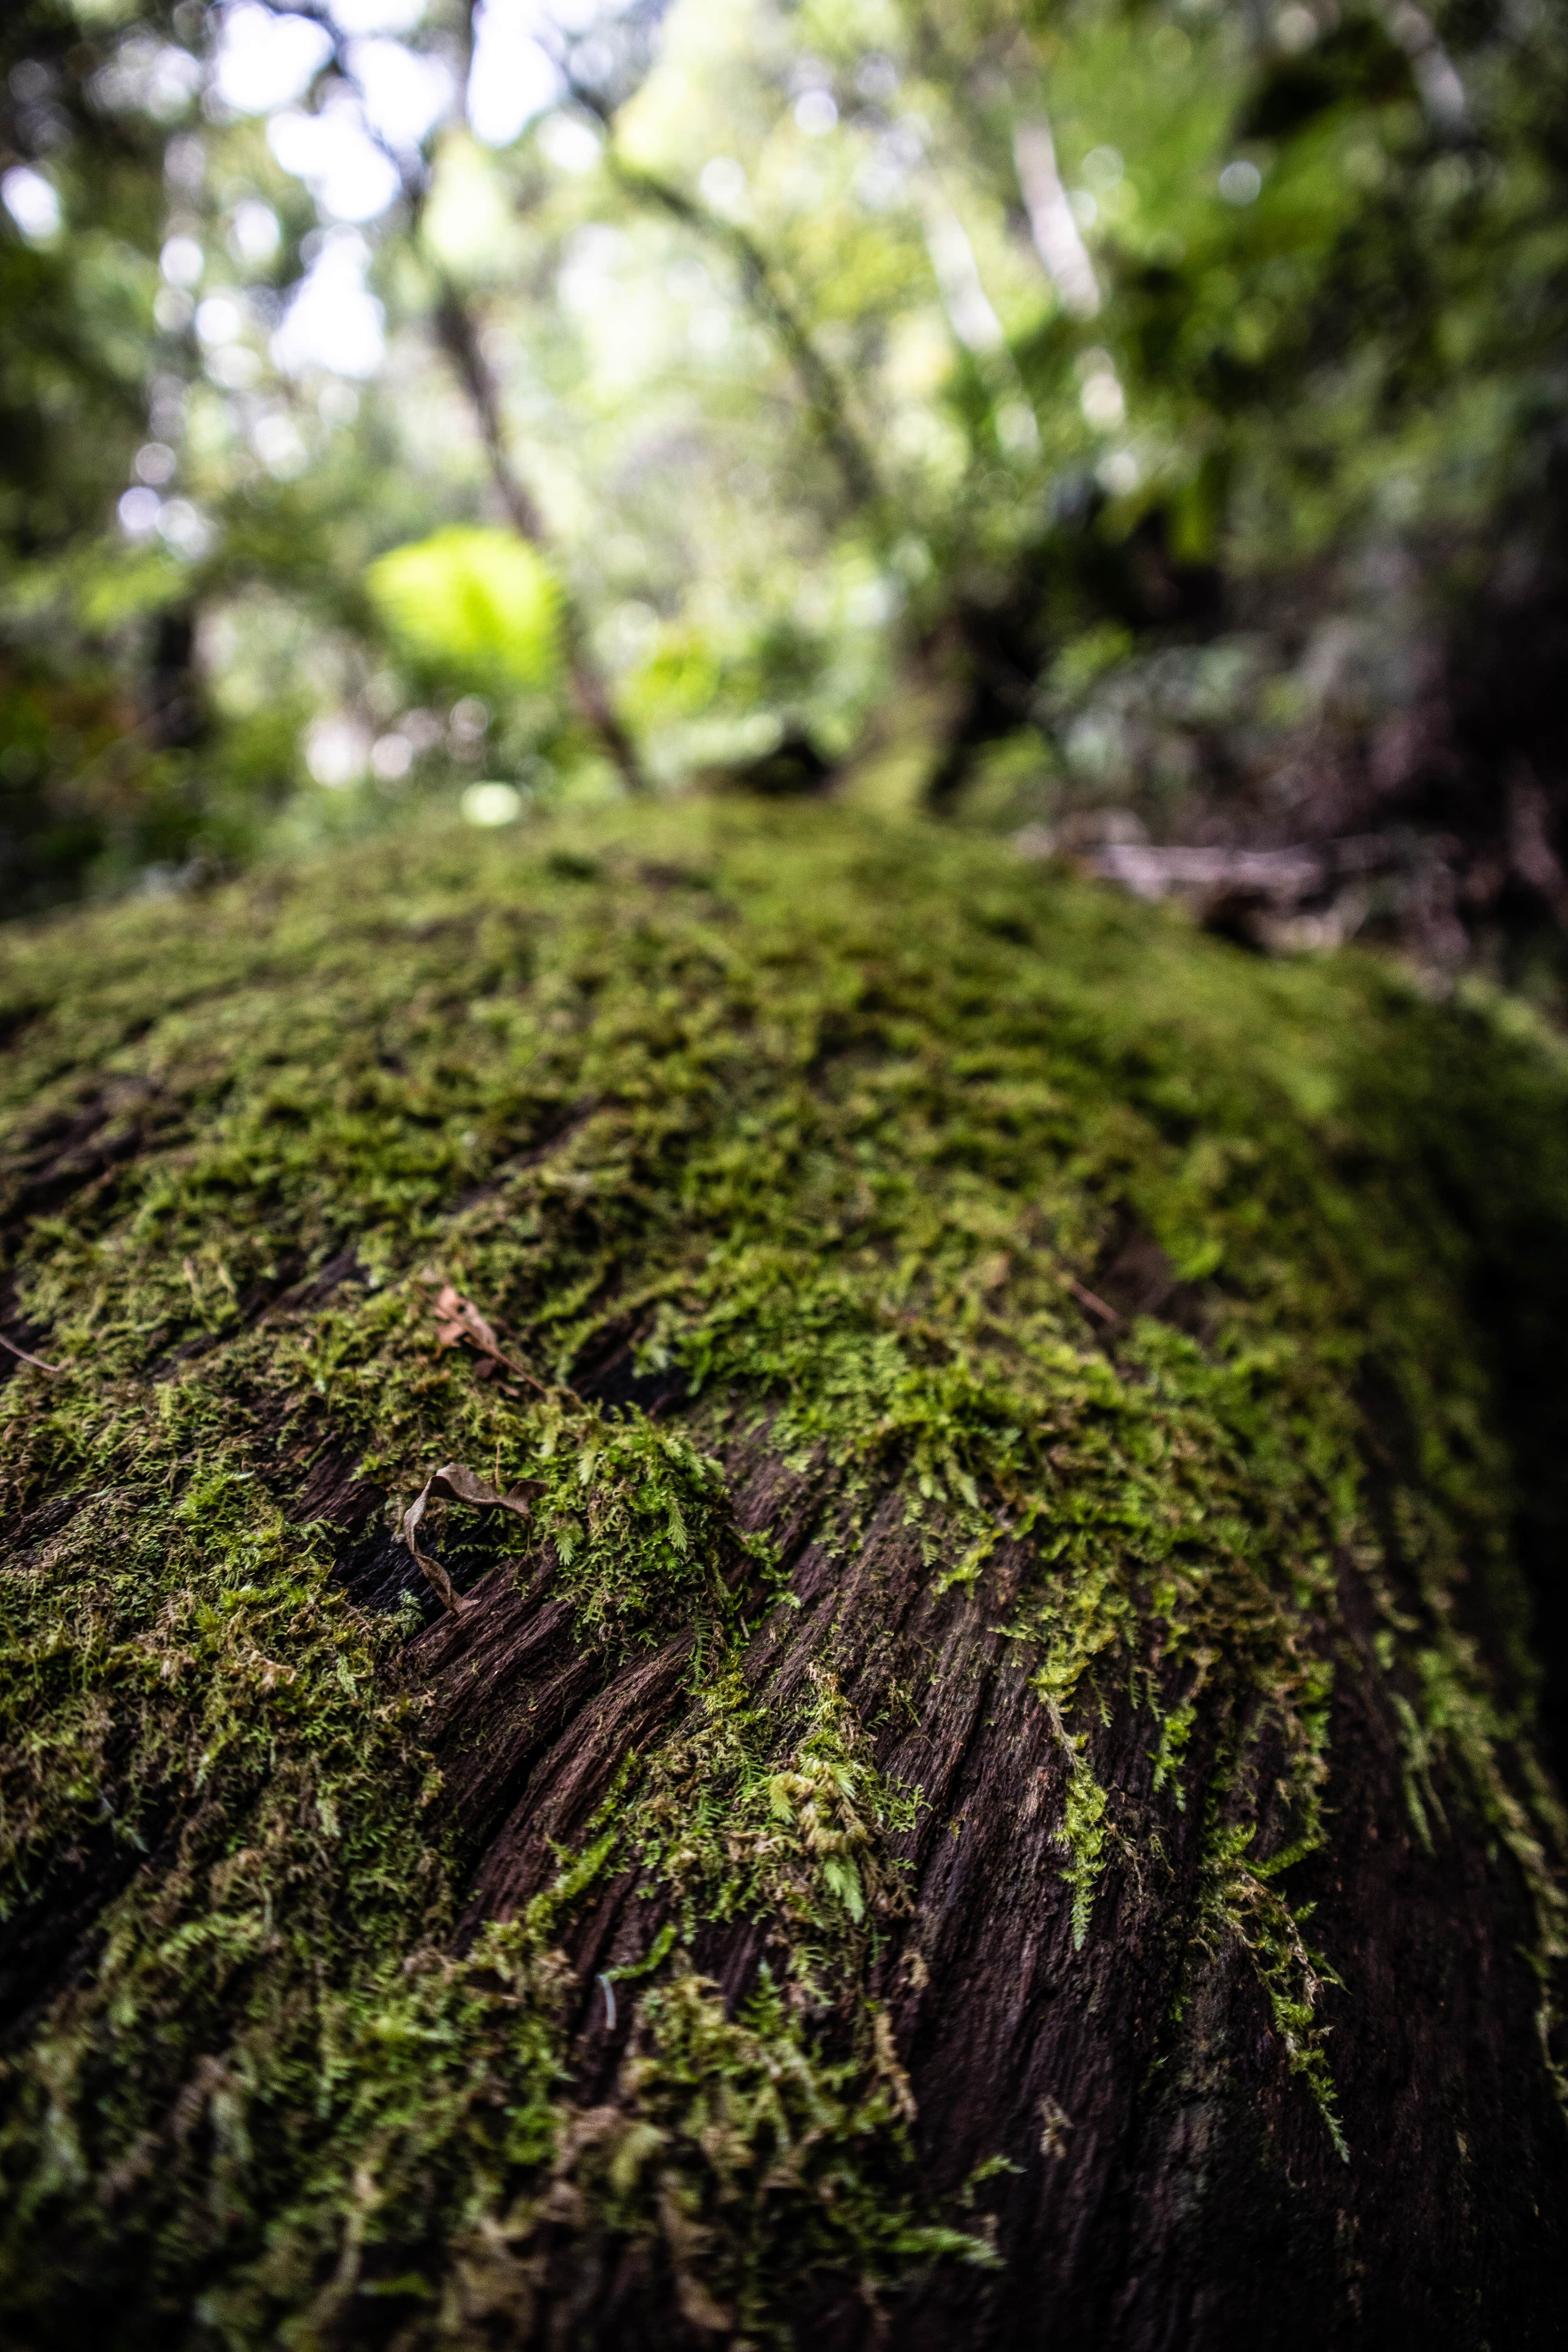 Moss covered log in ancient rainforest